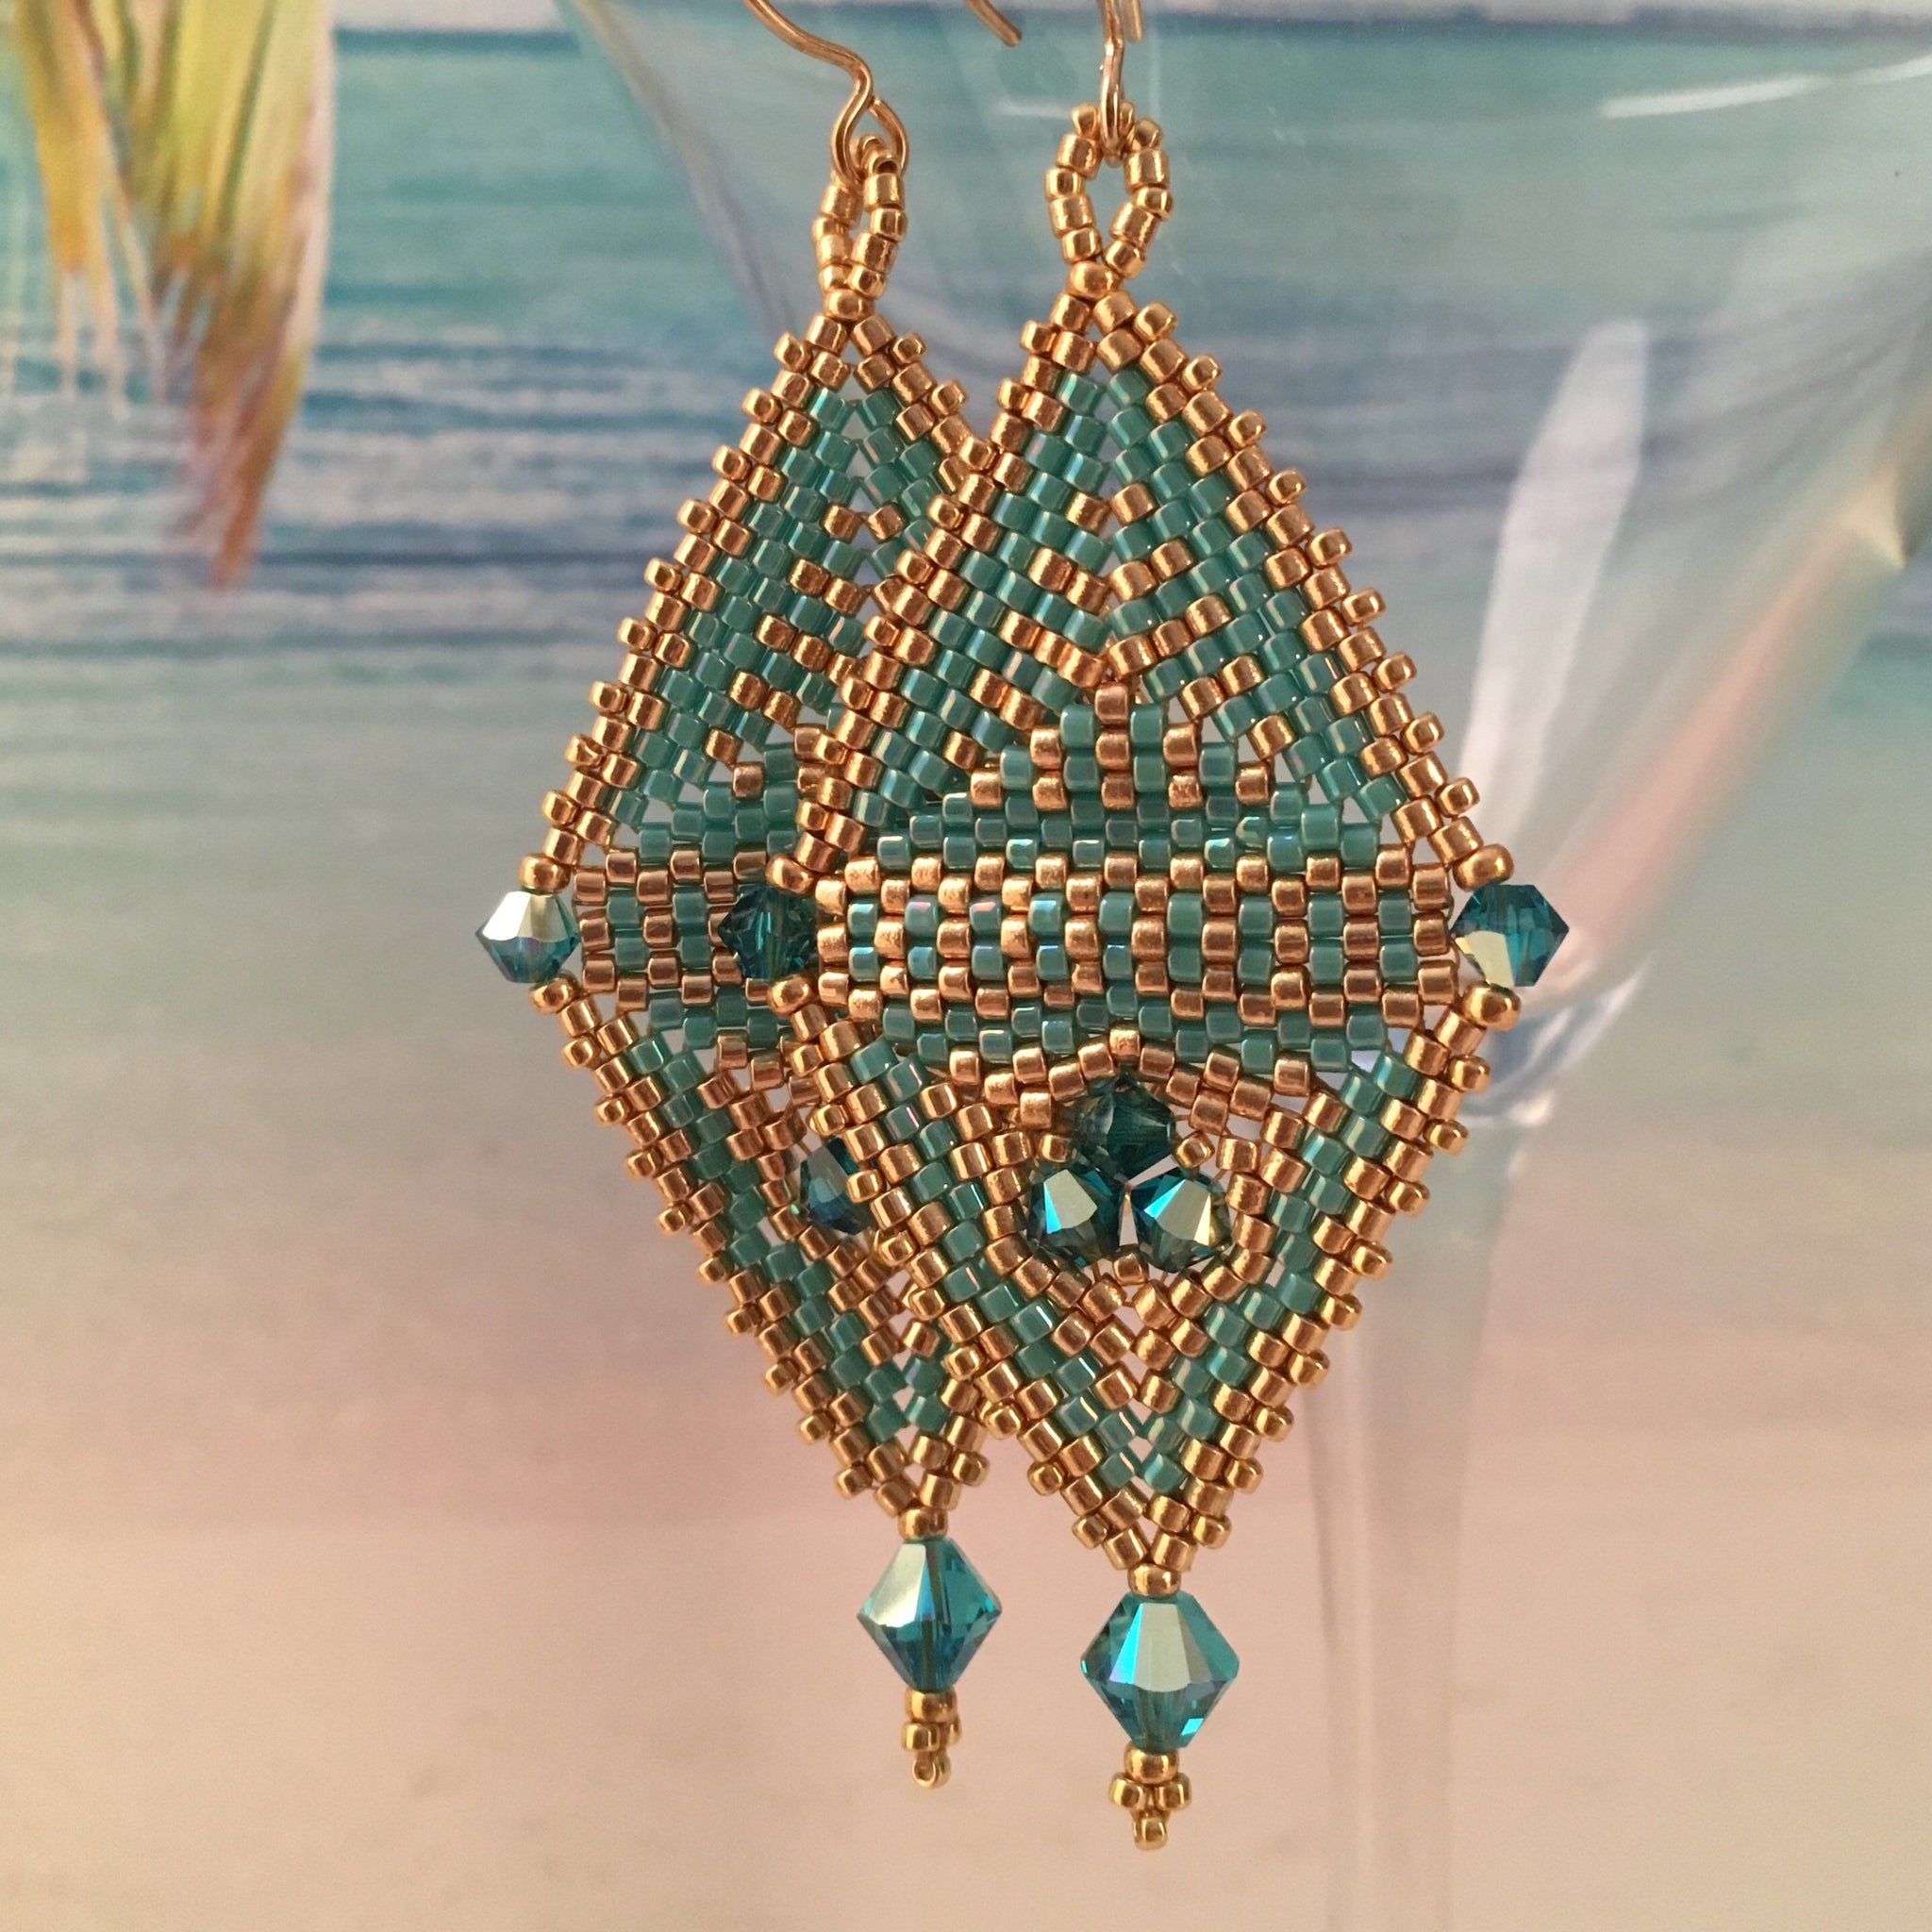 Modern contemporary geometric earrings with 12 Swarovski crystals Beaded By The Beach Gold Turquoise custom